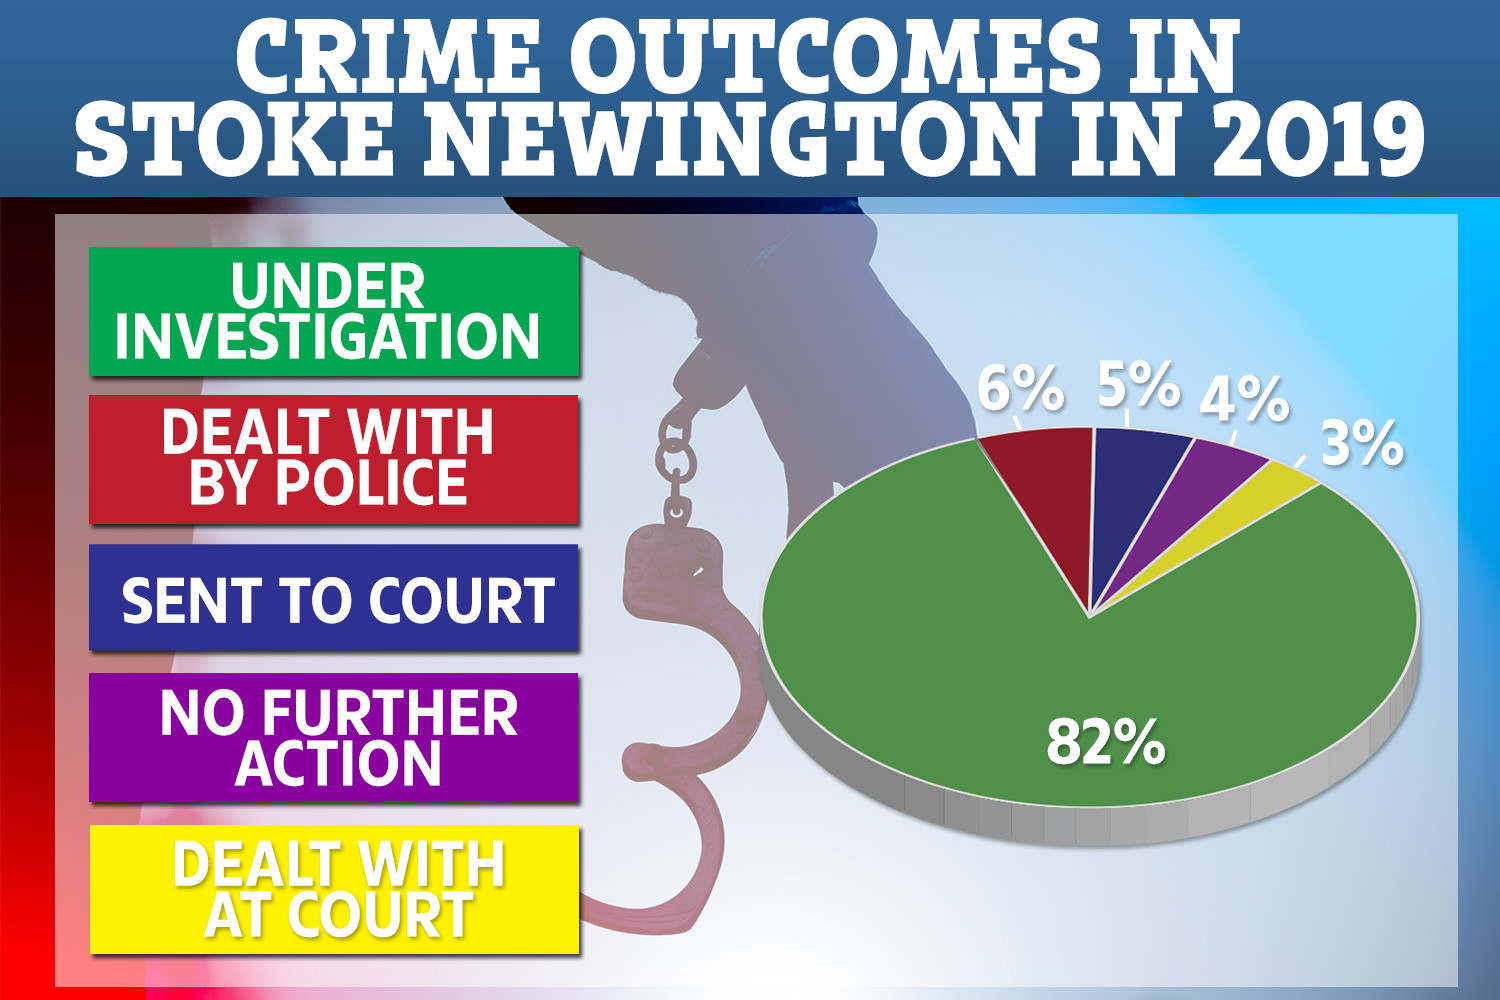 Only three per cent of offences committed last year in the area have been dealt with by a court